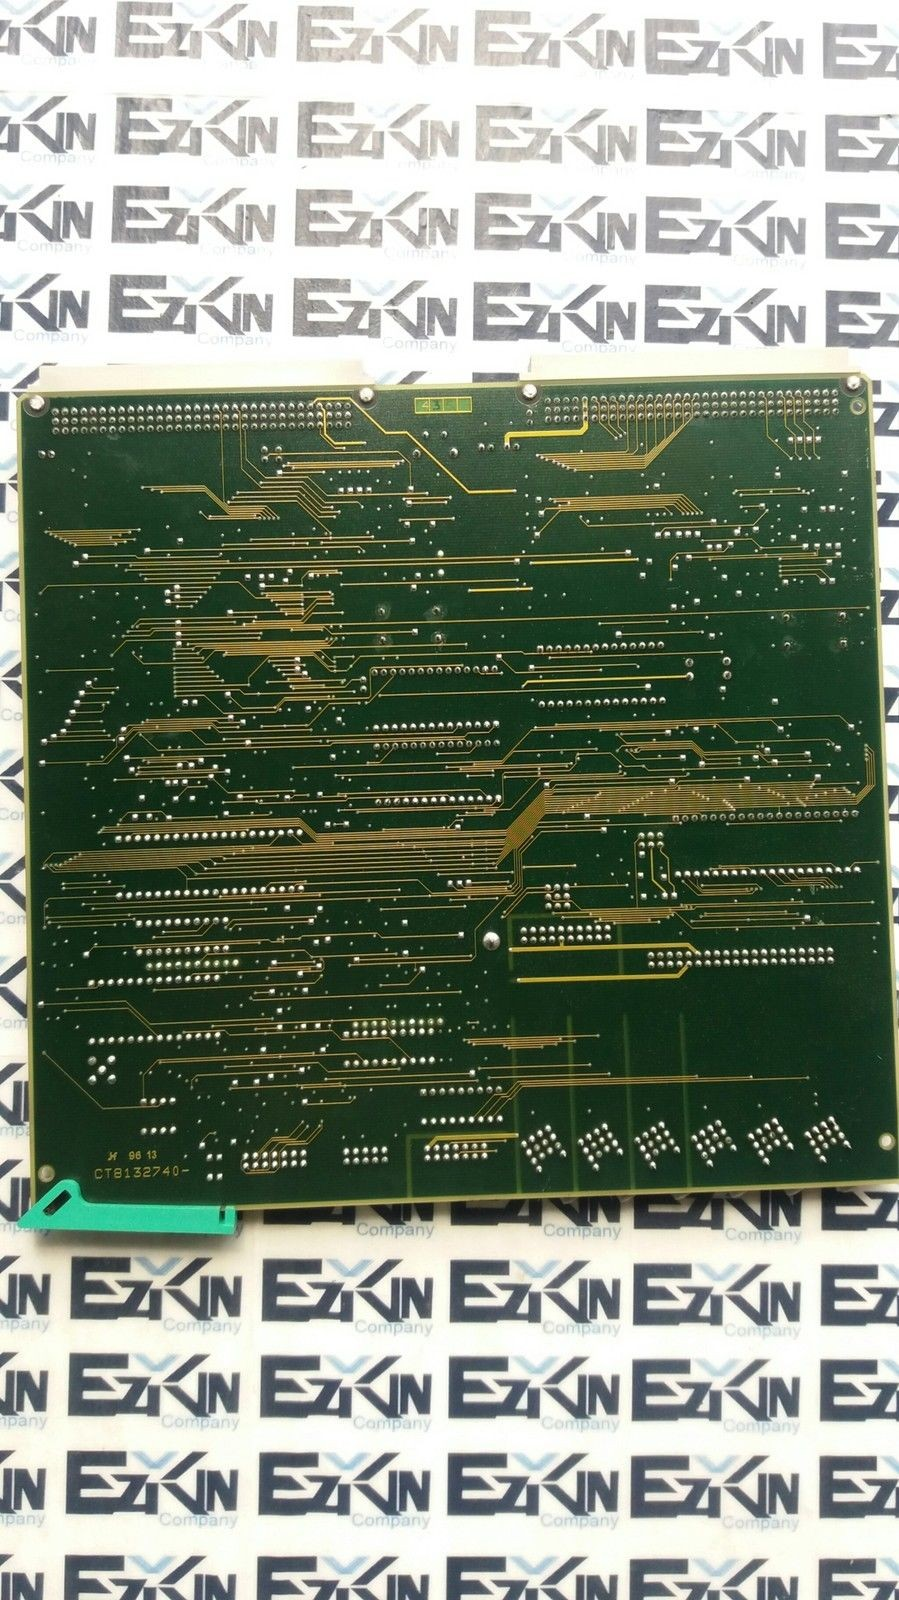 CHARMILLES CT8132740 CIRCUIT BOARD